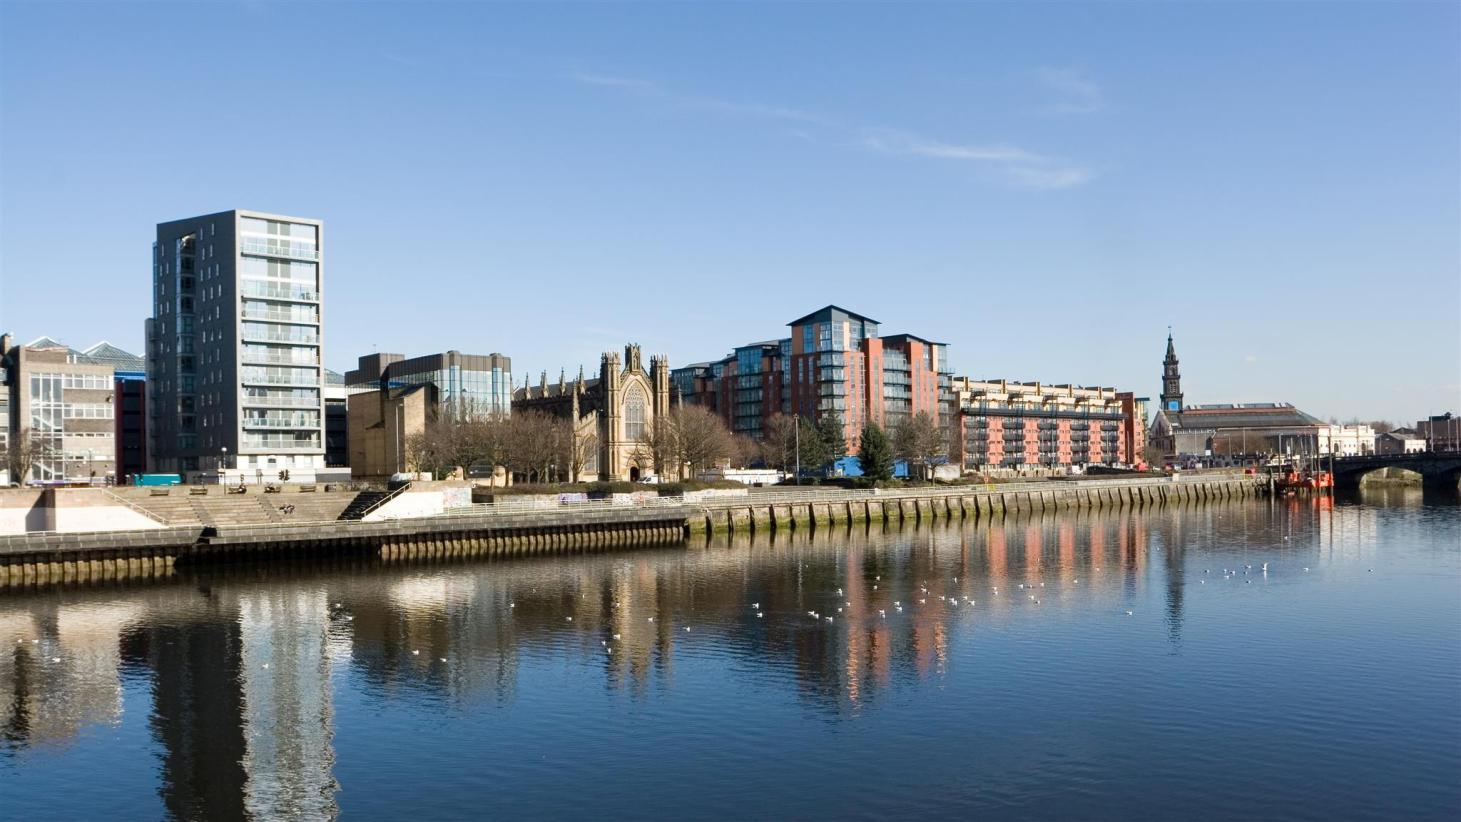 10 Best Glasgow Hotels Hd Photos Reviews Of Hotels In